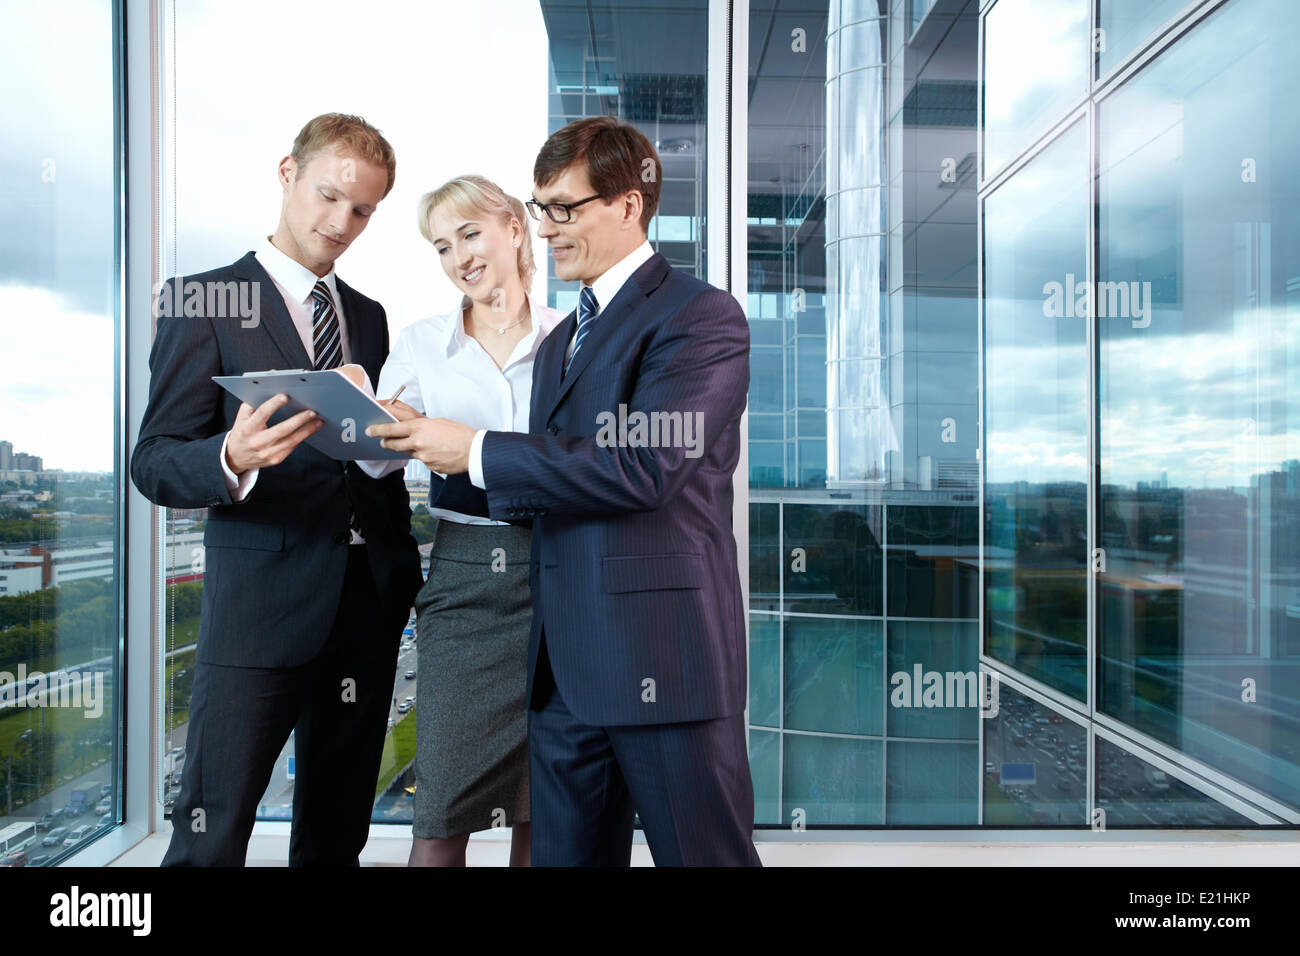 Working processes - Stock Image